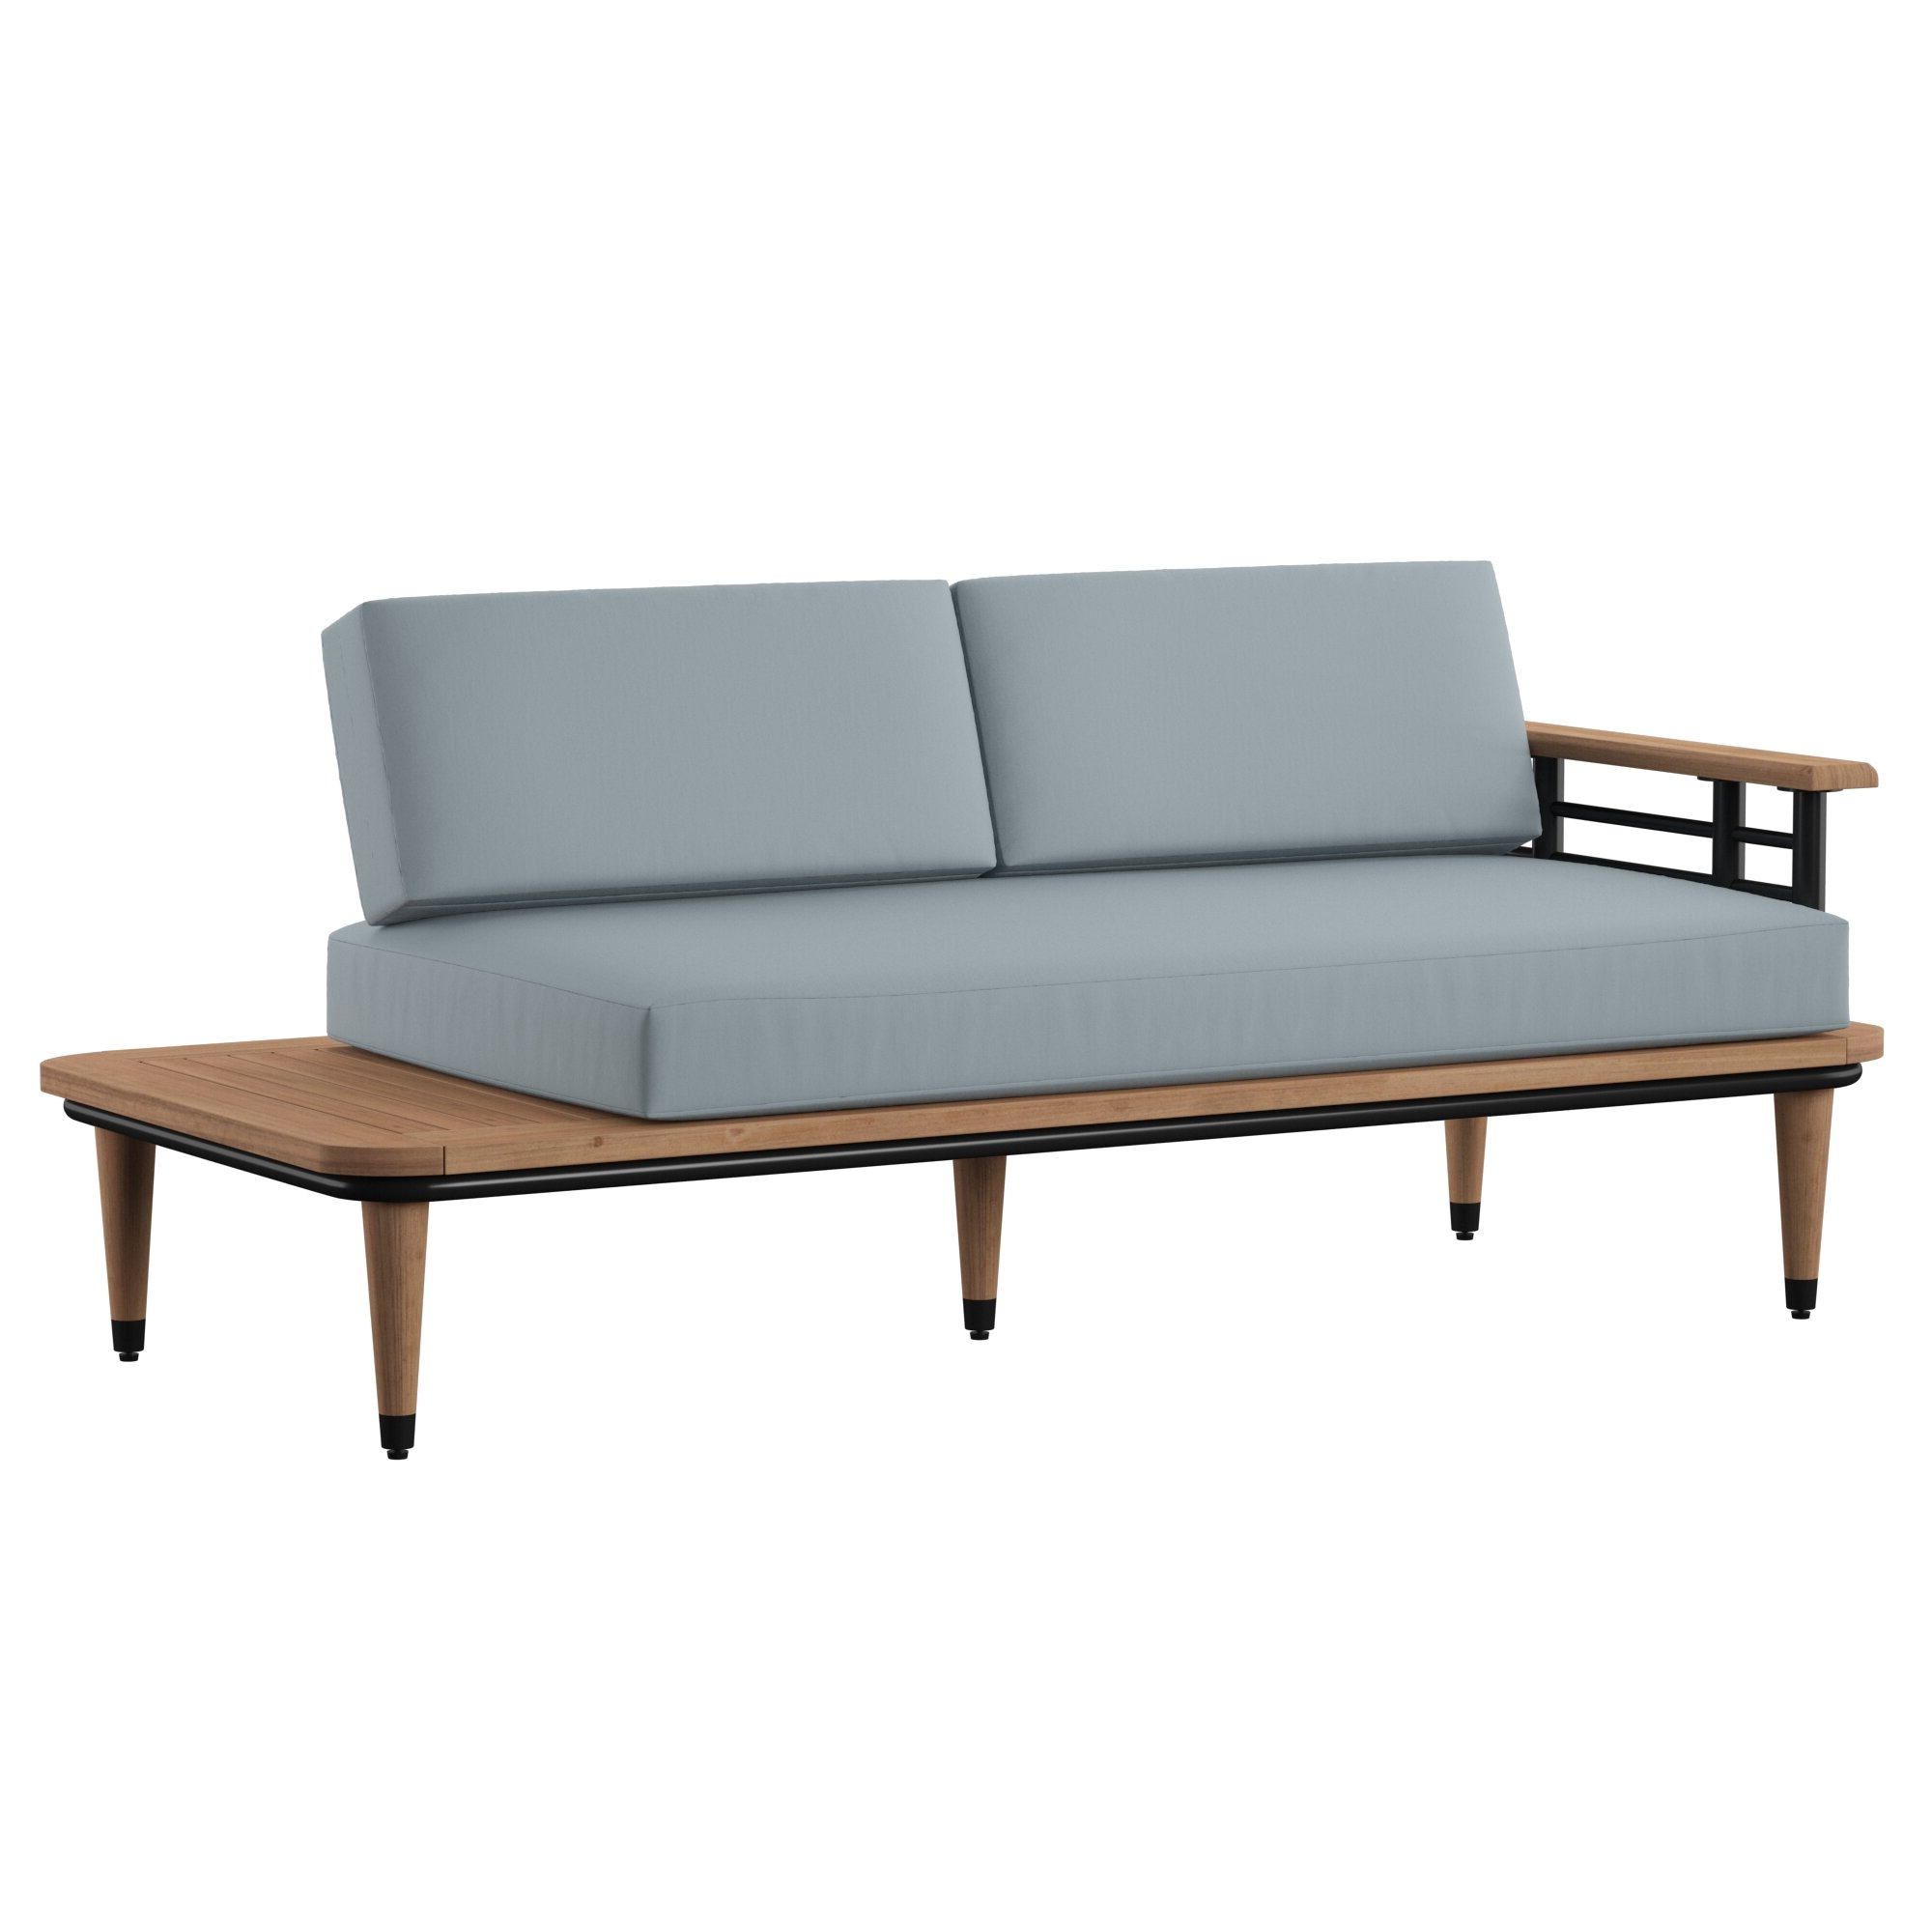 Newest Clary Teak Lounge Patio Daybeds With Cushion With Mercury Row Clary Teak Lounge Patio Daybed With Cushion Spruce (View 3 of 20)